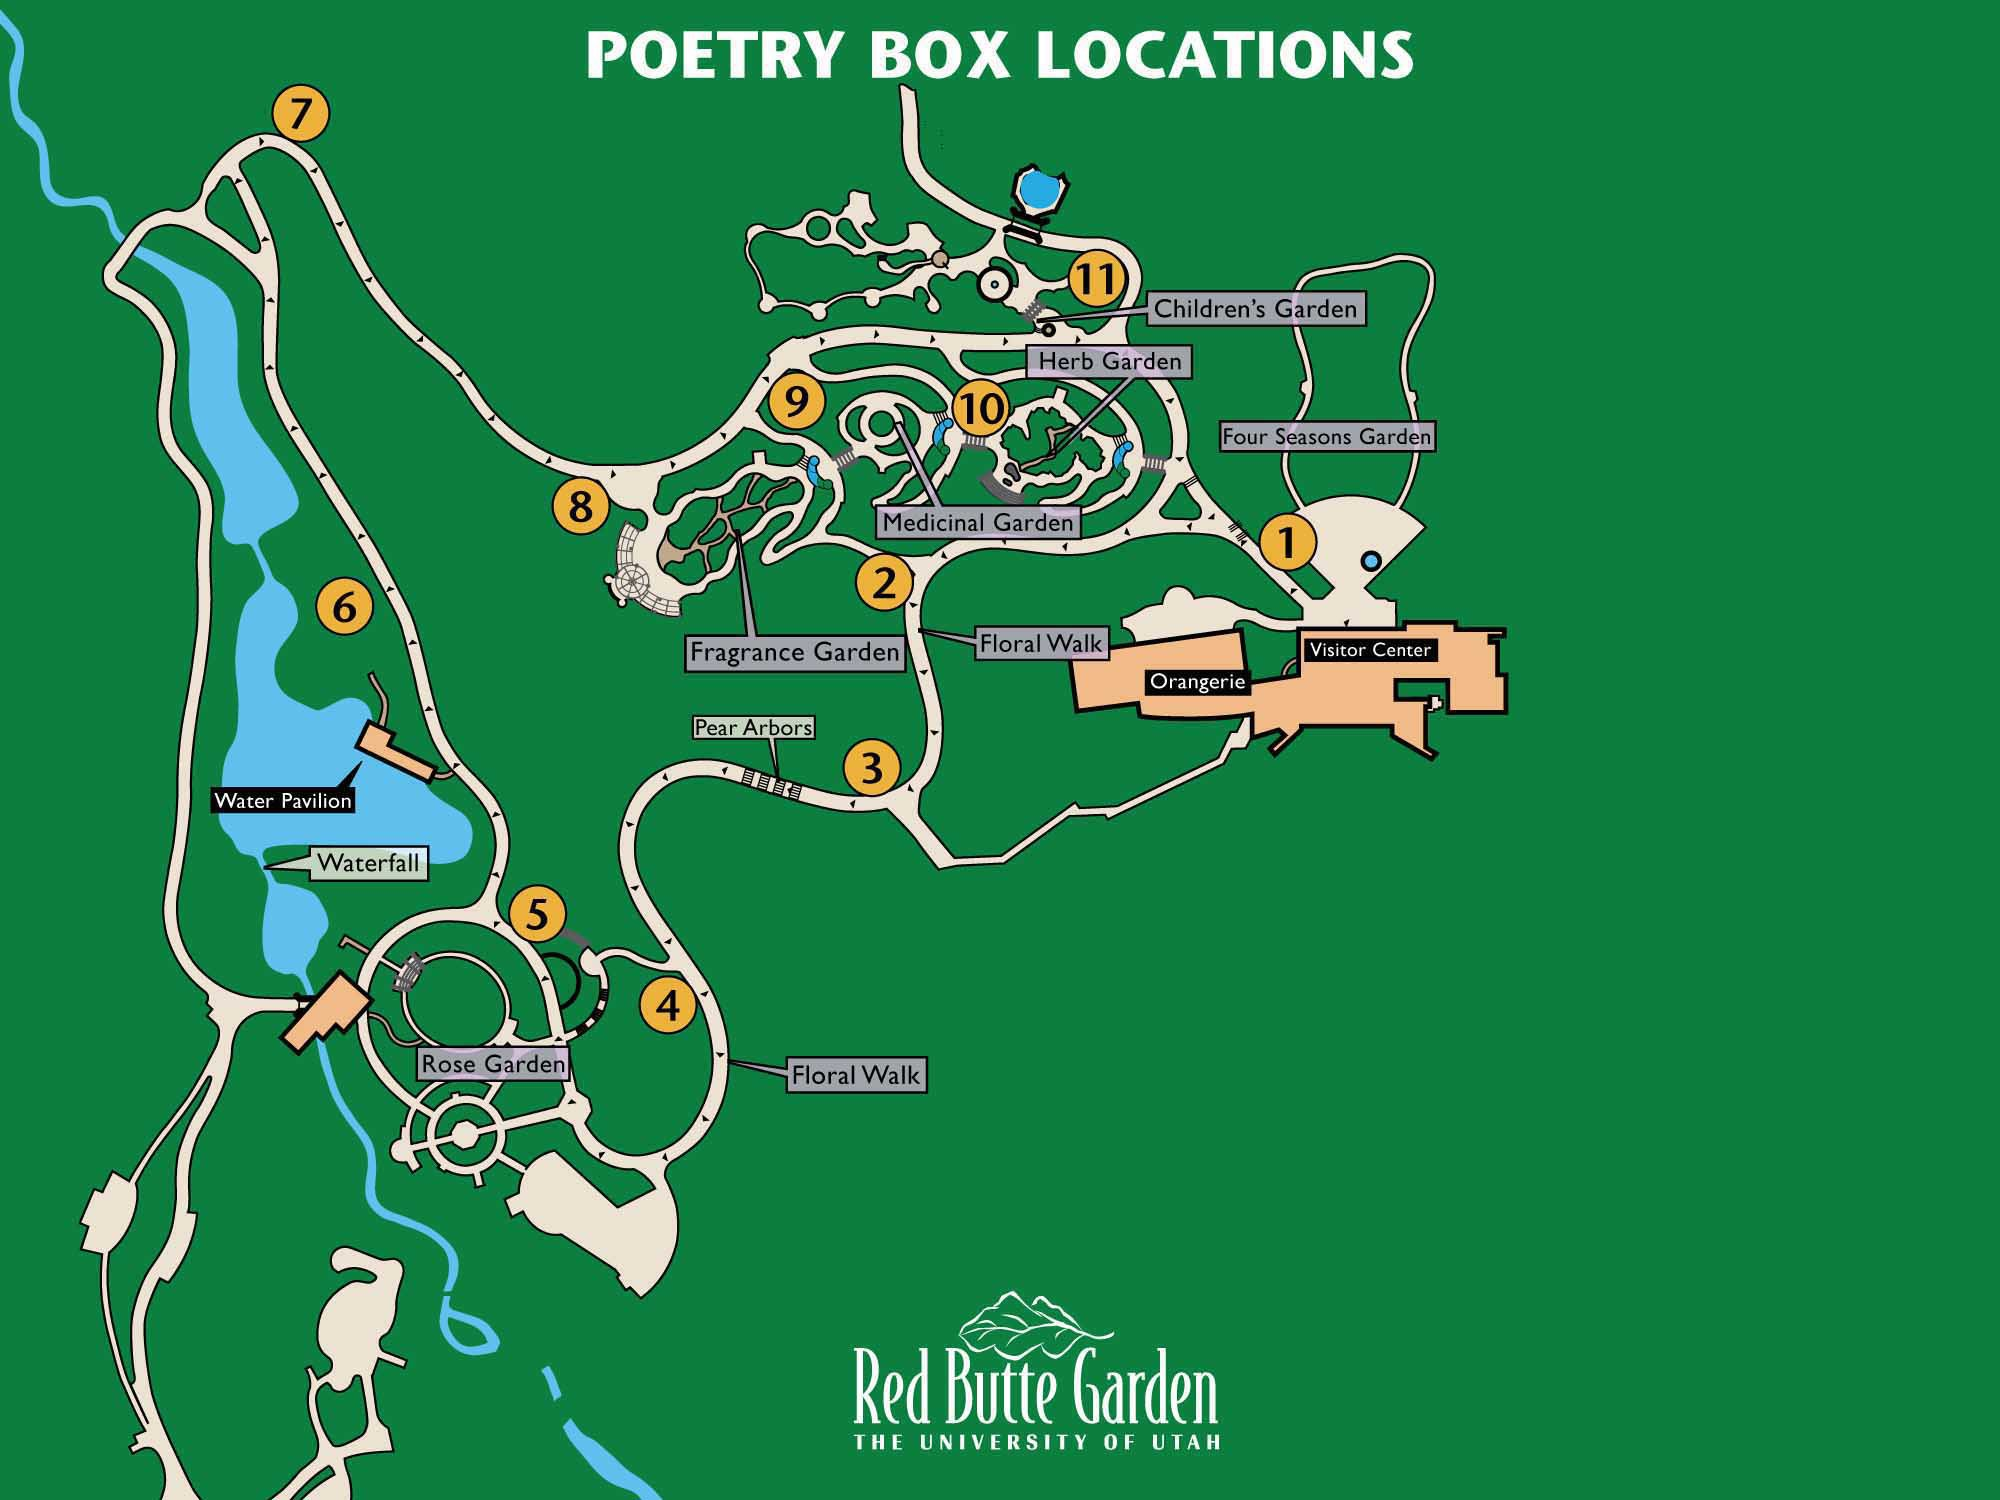 Poetry Box Locations